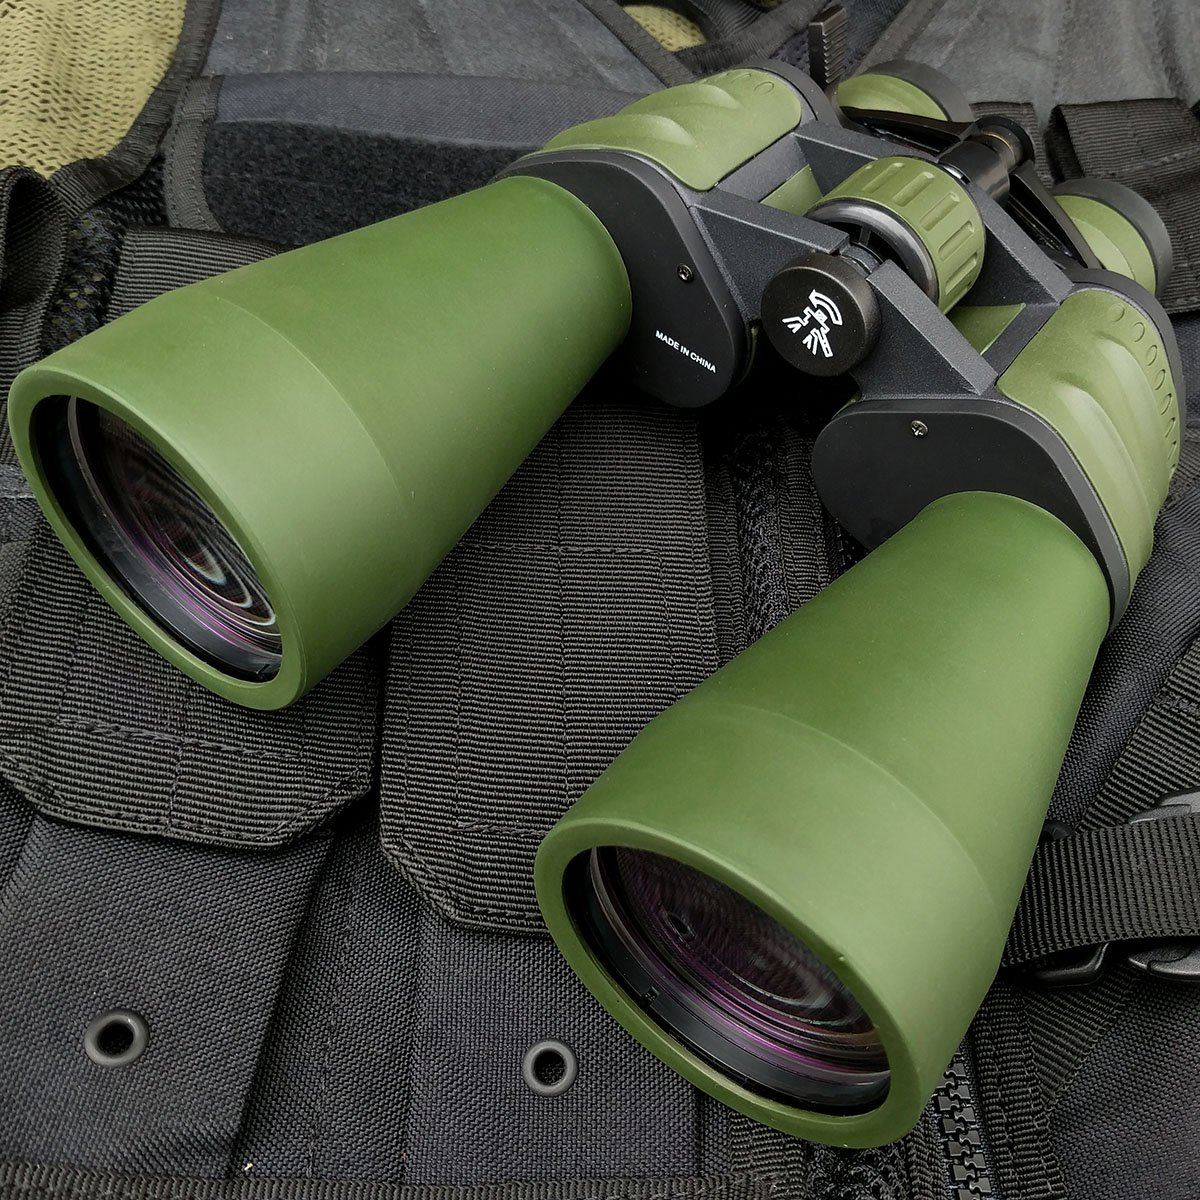 Defender Day/Night 10x-120x90 HUGE MILITARY Power Zoom Hunting BINOCULARS w/Pouch Fishing | with Holt Multi Tool Key Chain